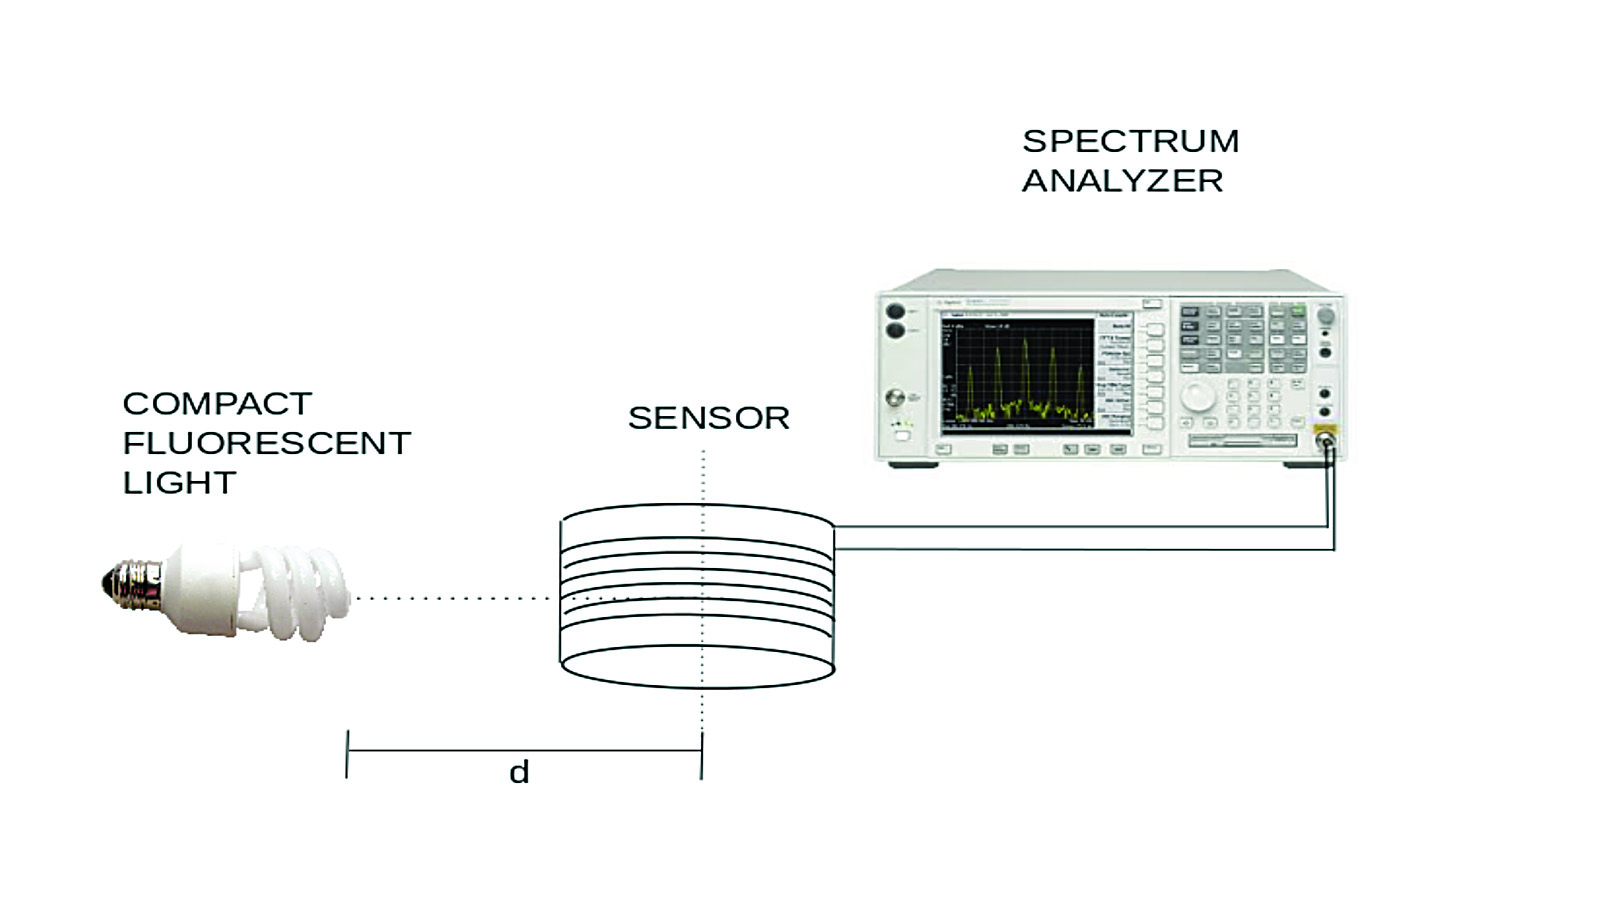 Rf Emissions Of Compact Fluorescent Lights Electronic Fluorescentlightelectronicballastcircuit Figure 9 Magnetic Field Measurements In The Radial Direction Sensor